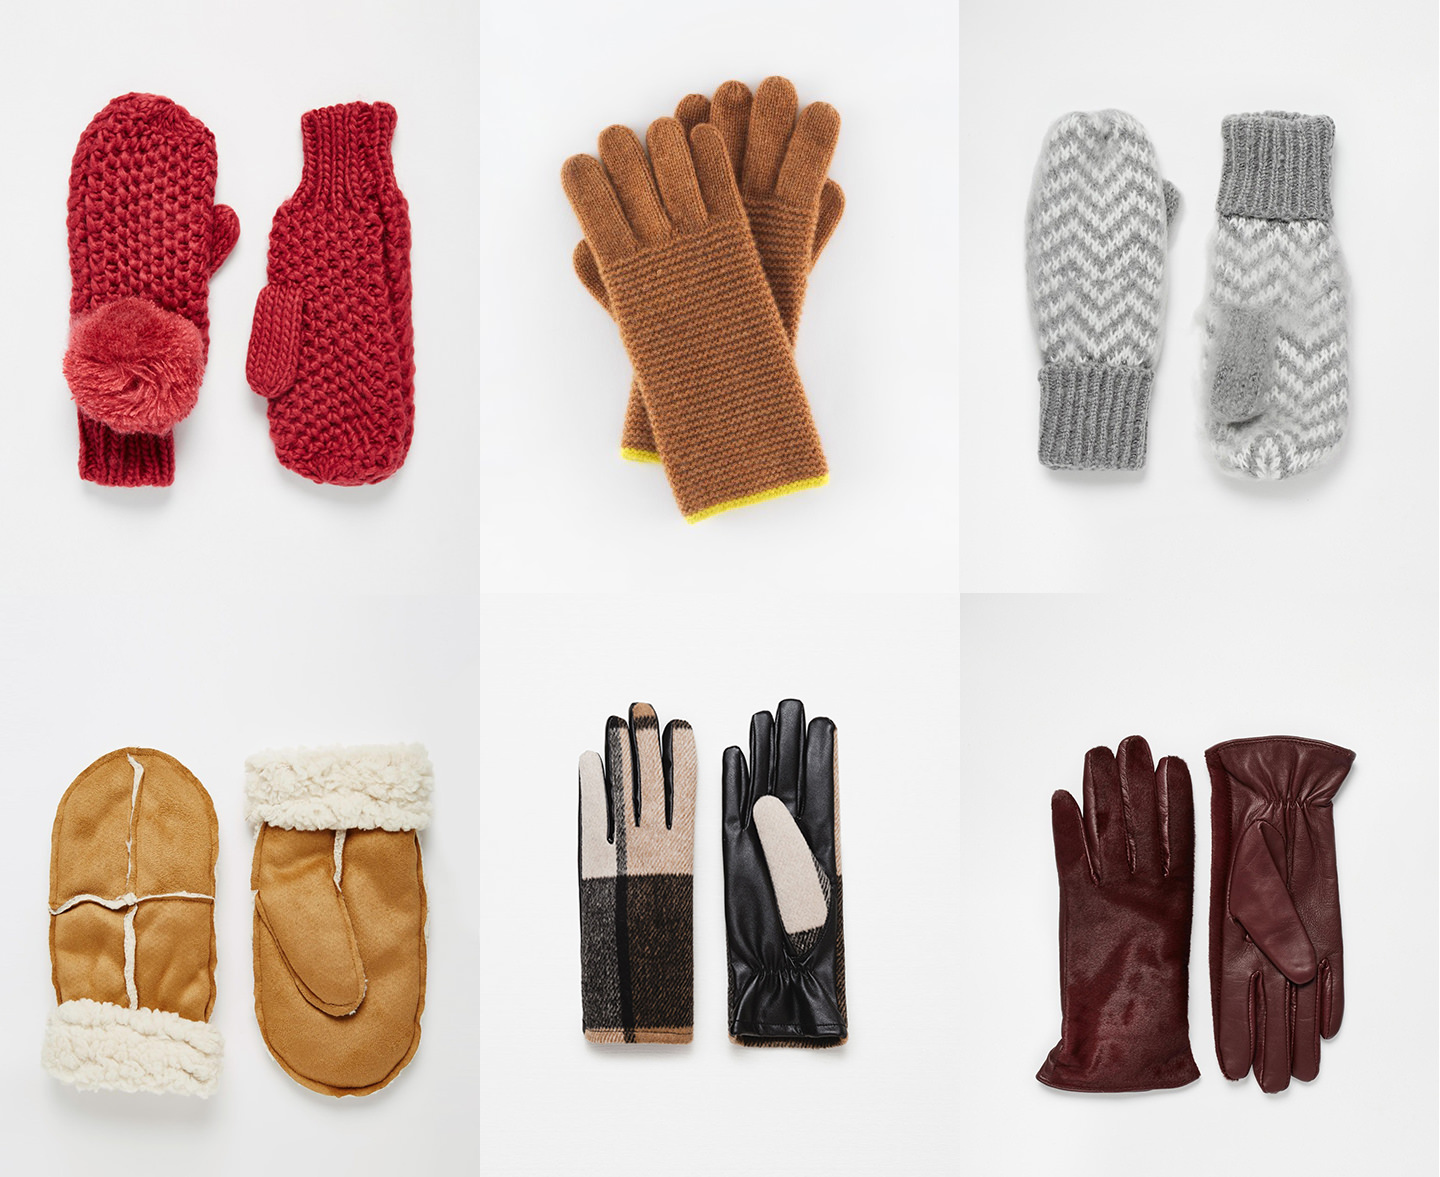 Blog-Mode-And-The-City-Beauté-Prendre-Soin-Mains-Hiver-gants